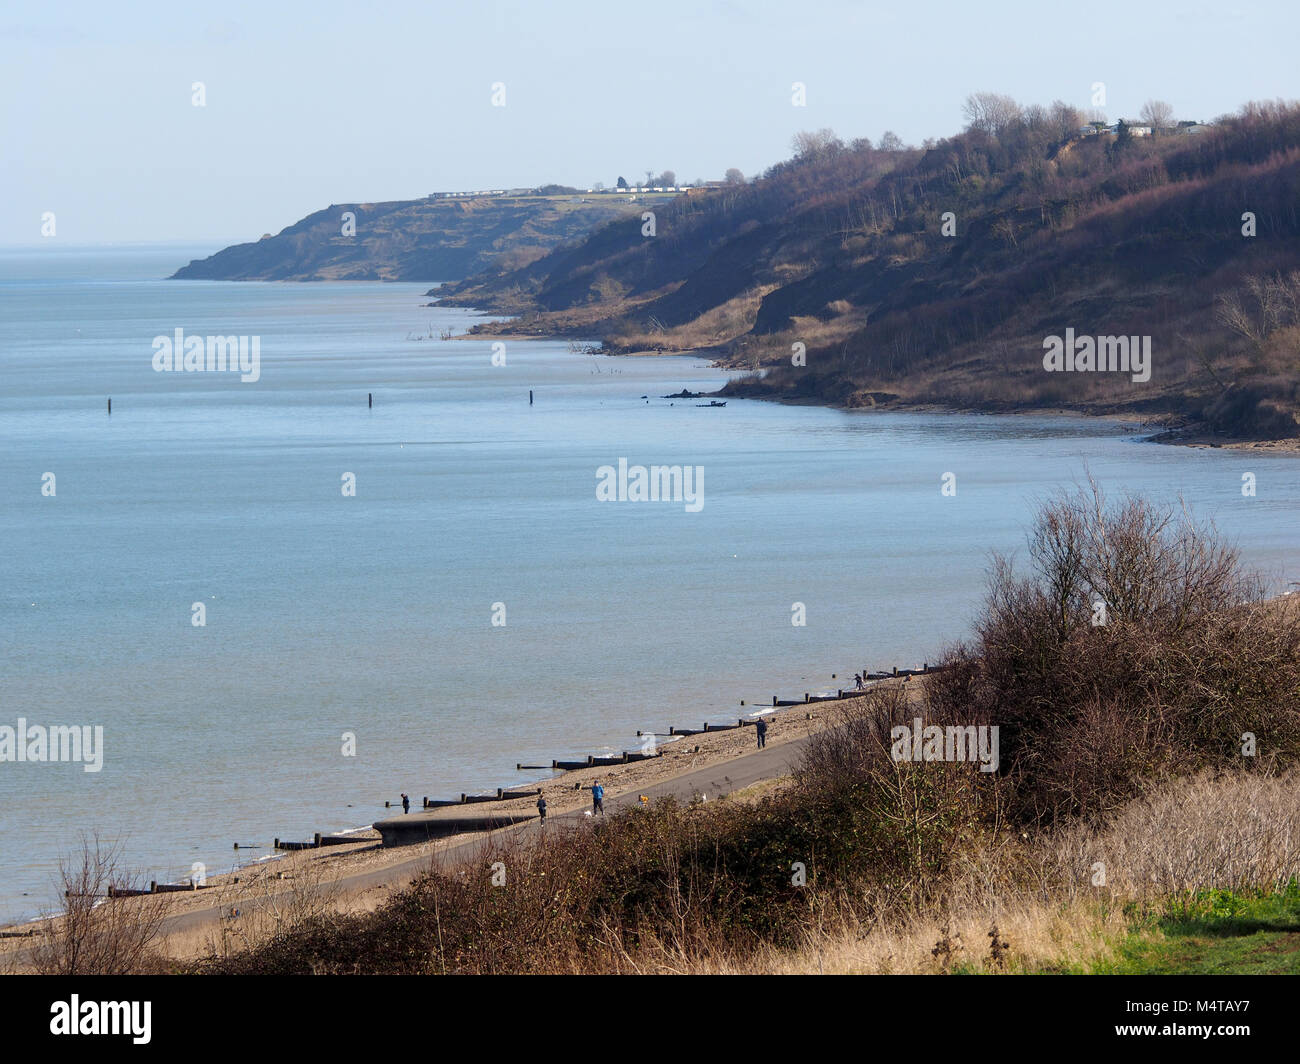 Minster on sea, Kent, UK. 18th Feb, 2018. UK Weather: another sunny and warm day in Minster on sea on the Isle of Sheppey in north Kent. Temp: 10c. Credit: James Bell/Alamy Live News Stock Photo